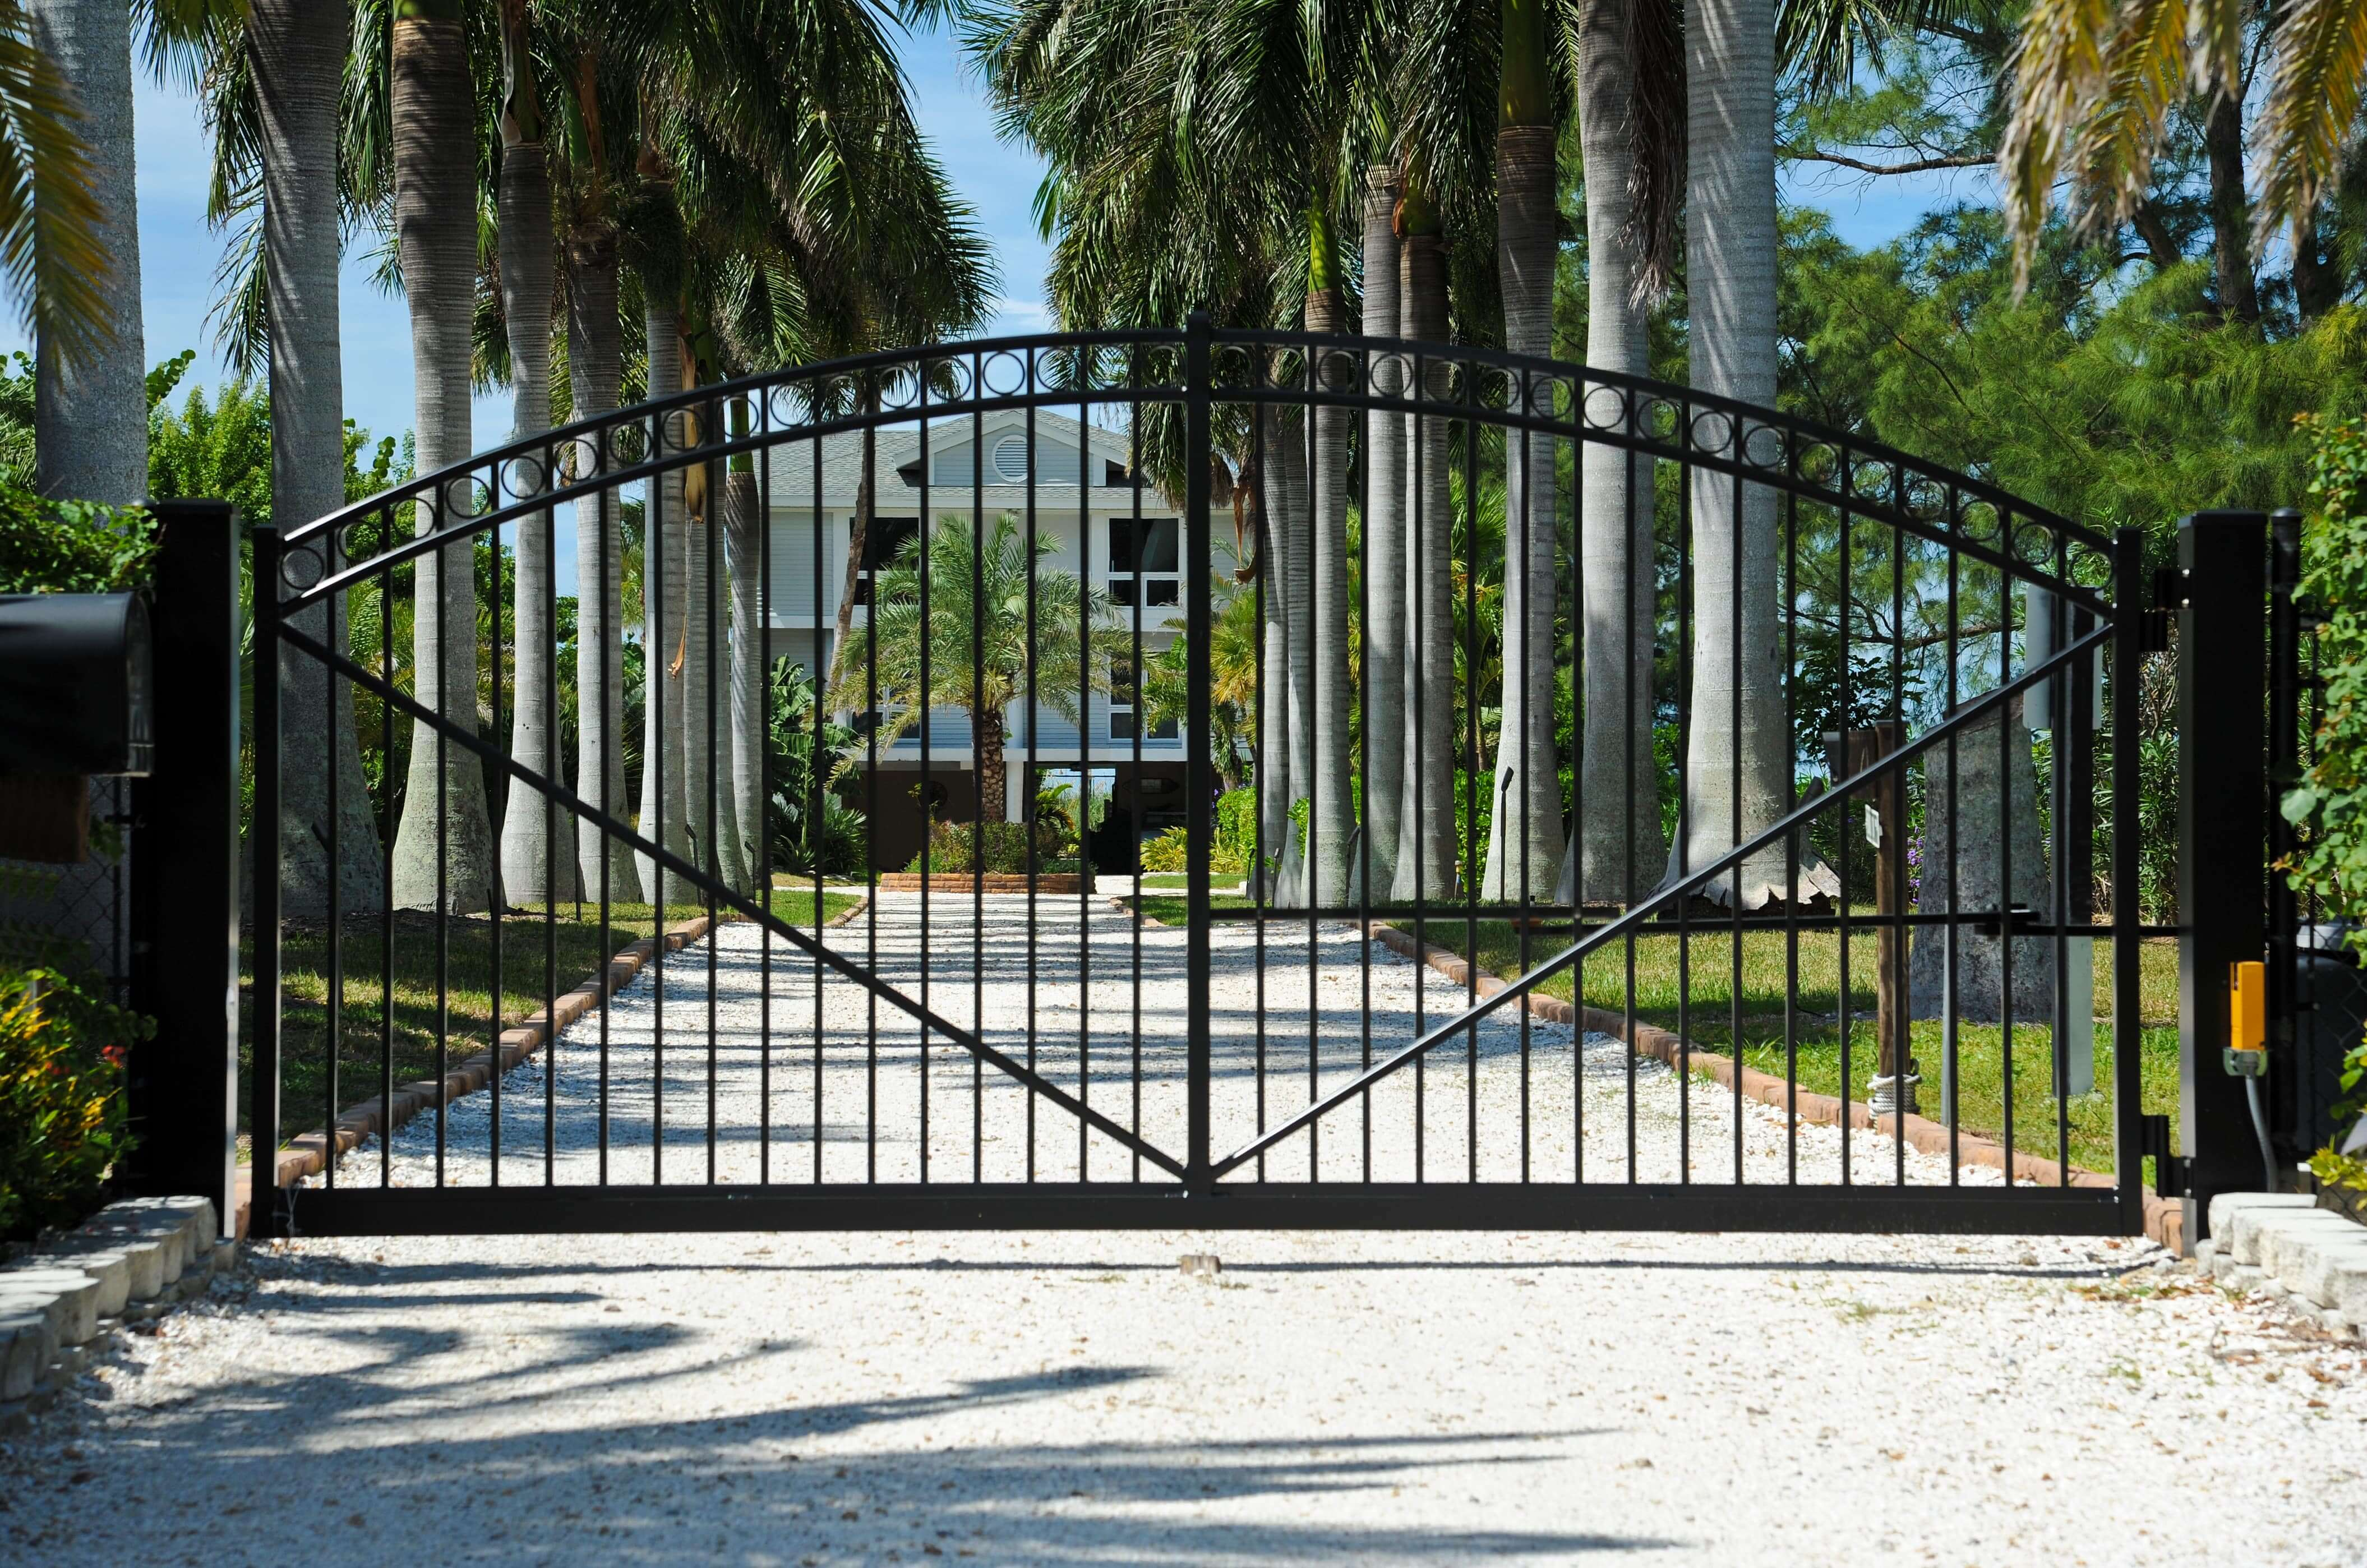 high end residence with security gate